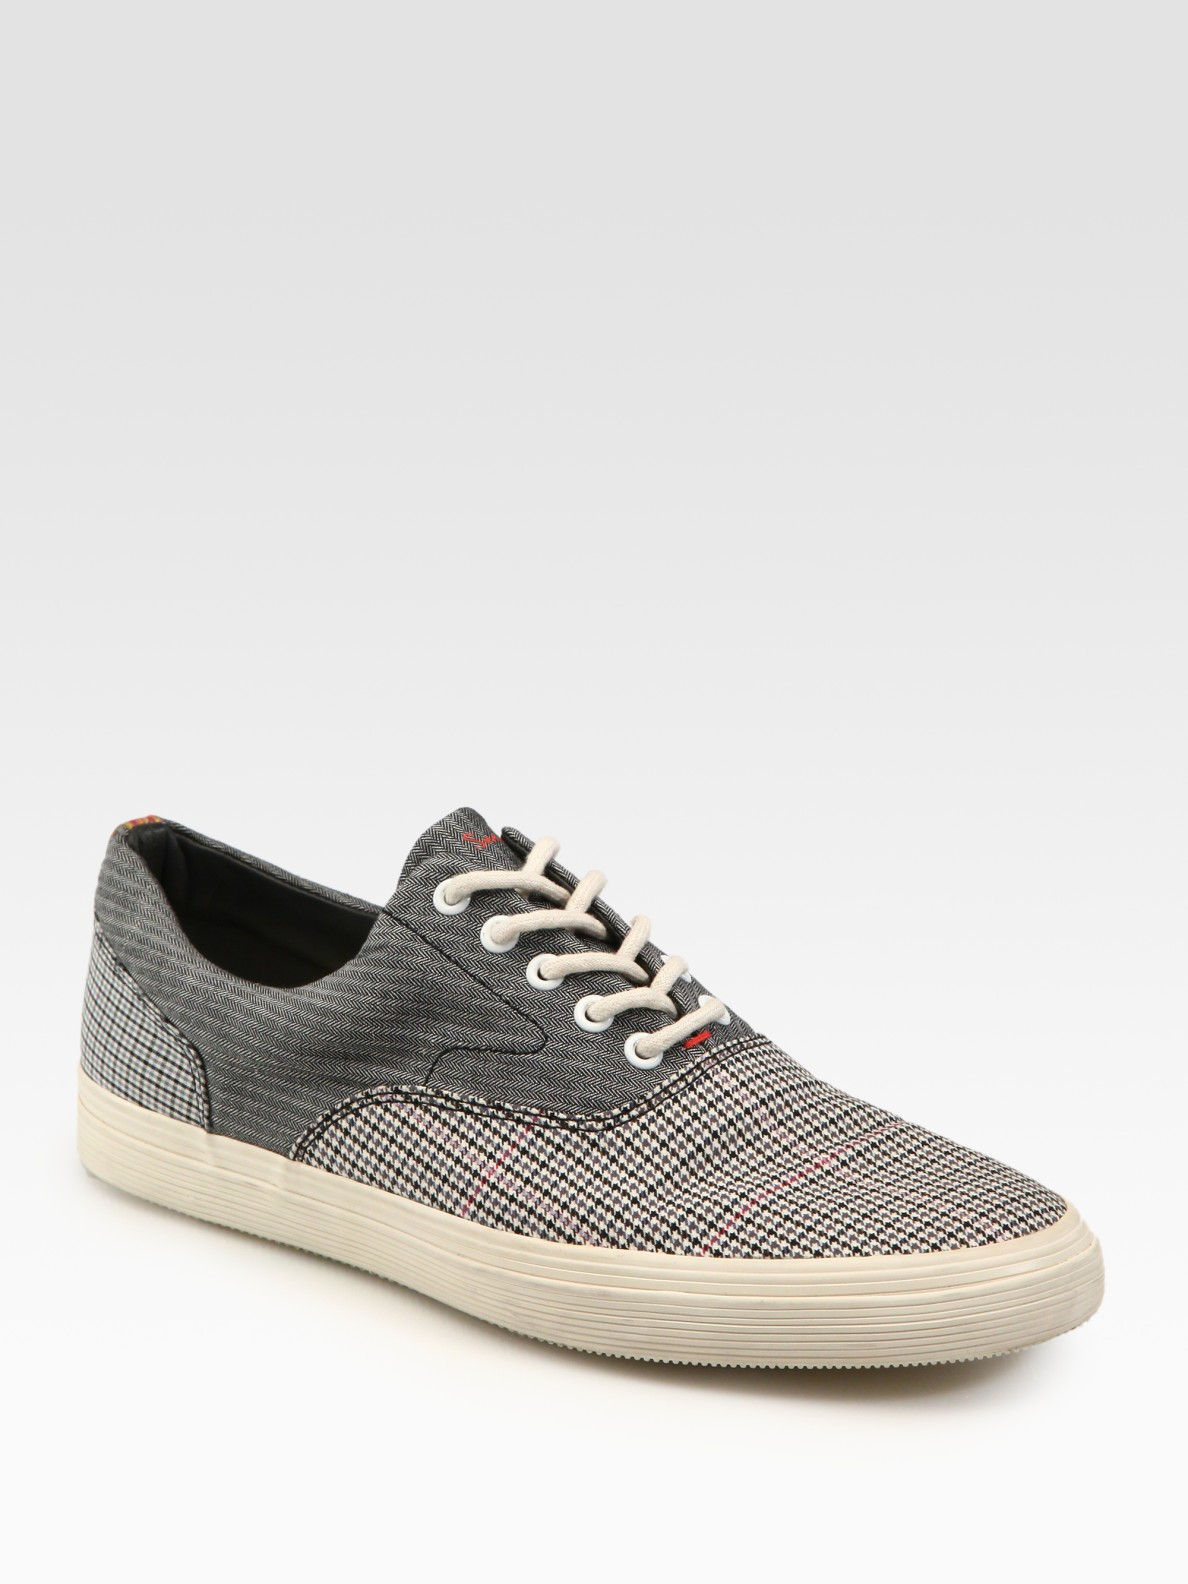 paul smith canvas sneakers in gray for lyst